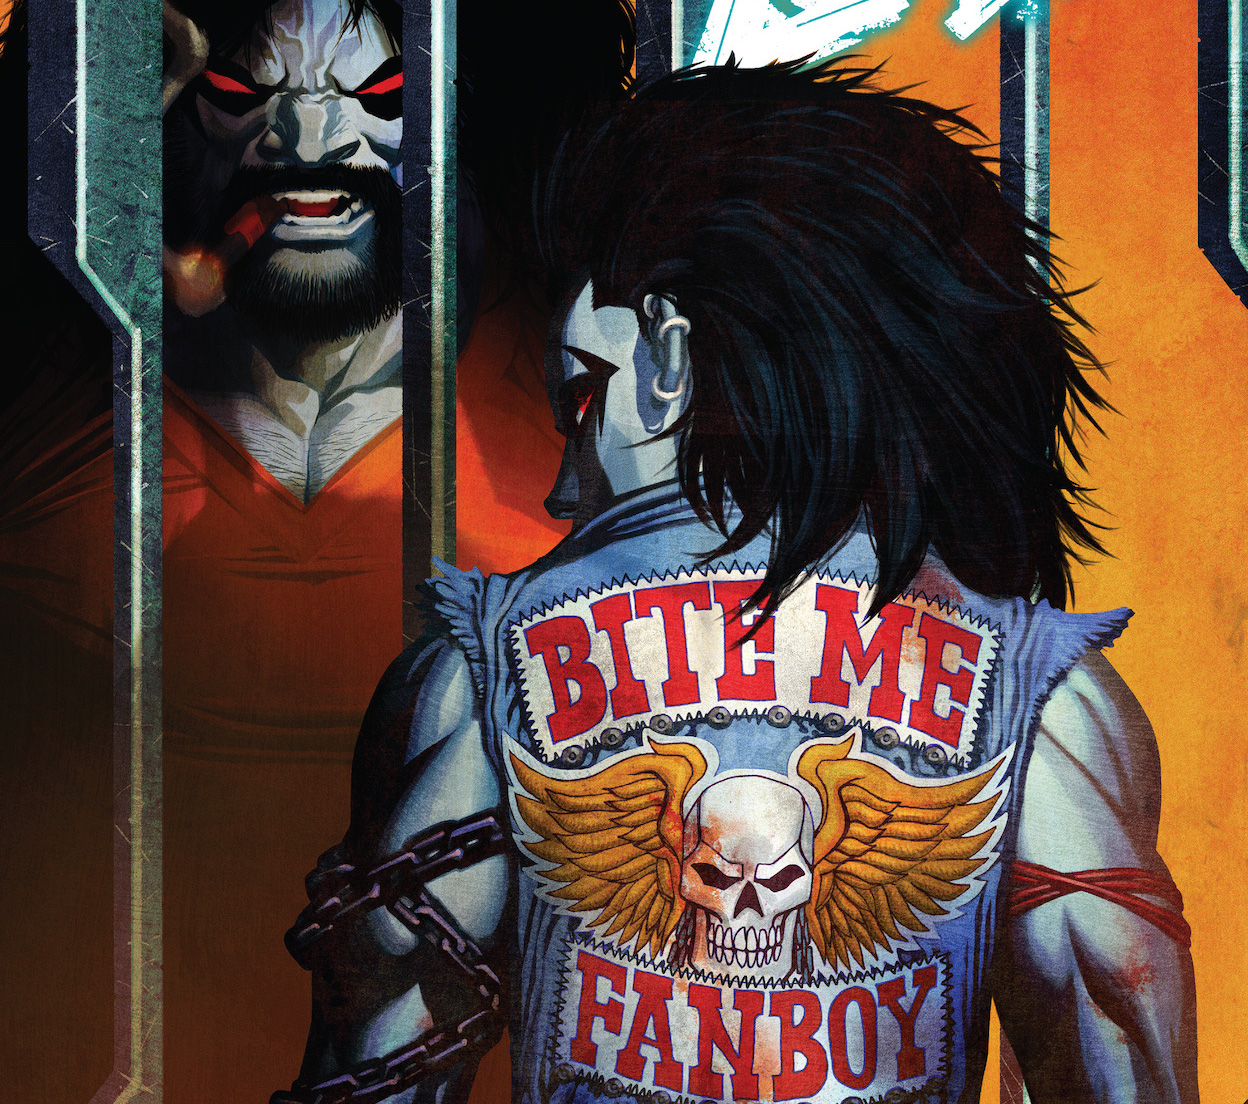 'Crush and Lobo' #3 takes its style and attitude to prison